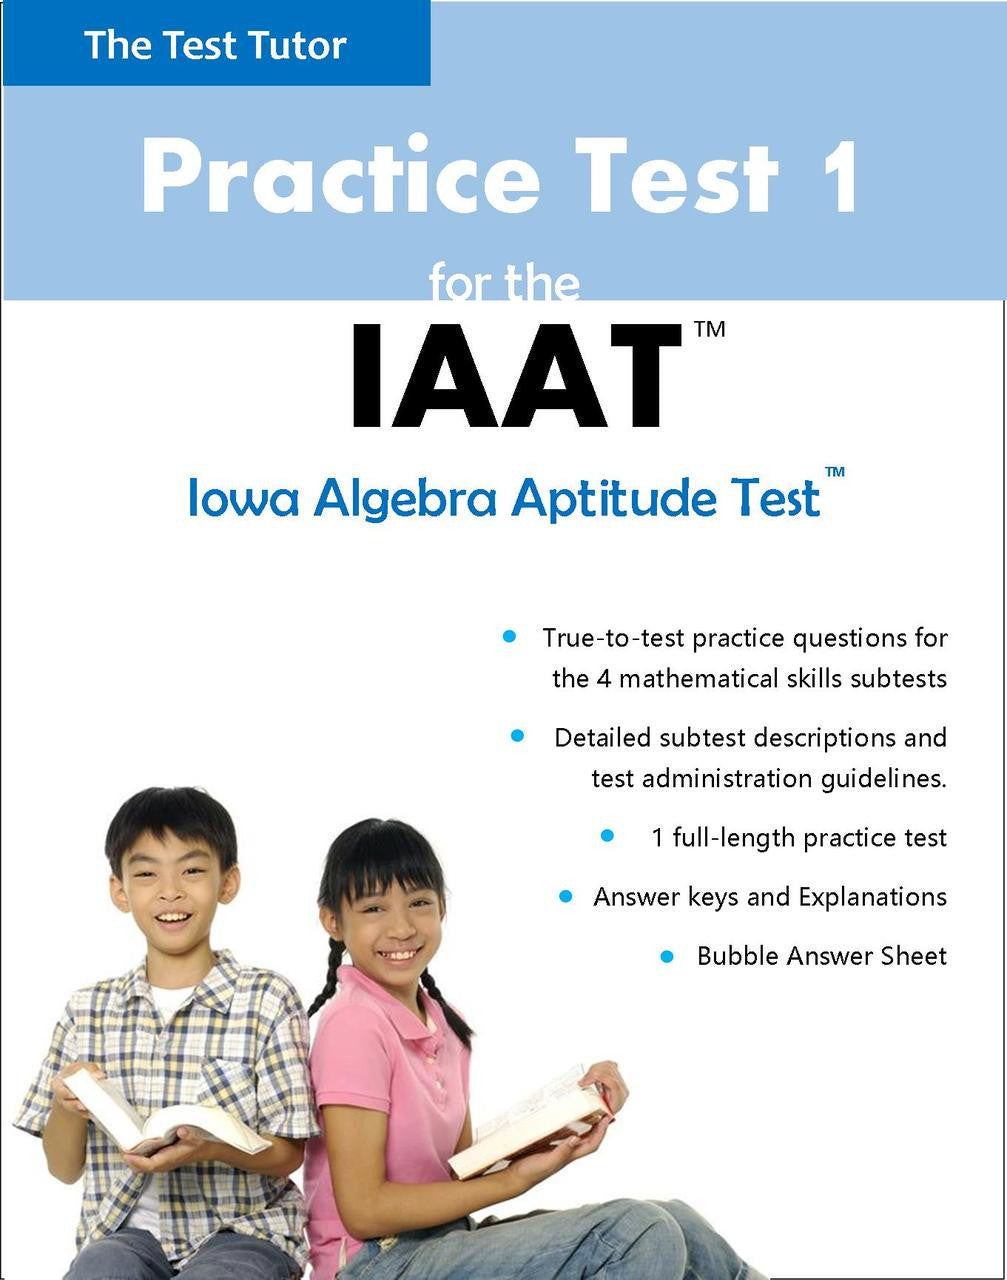 Practice Test for the IAAT - The Test Tutor